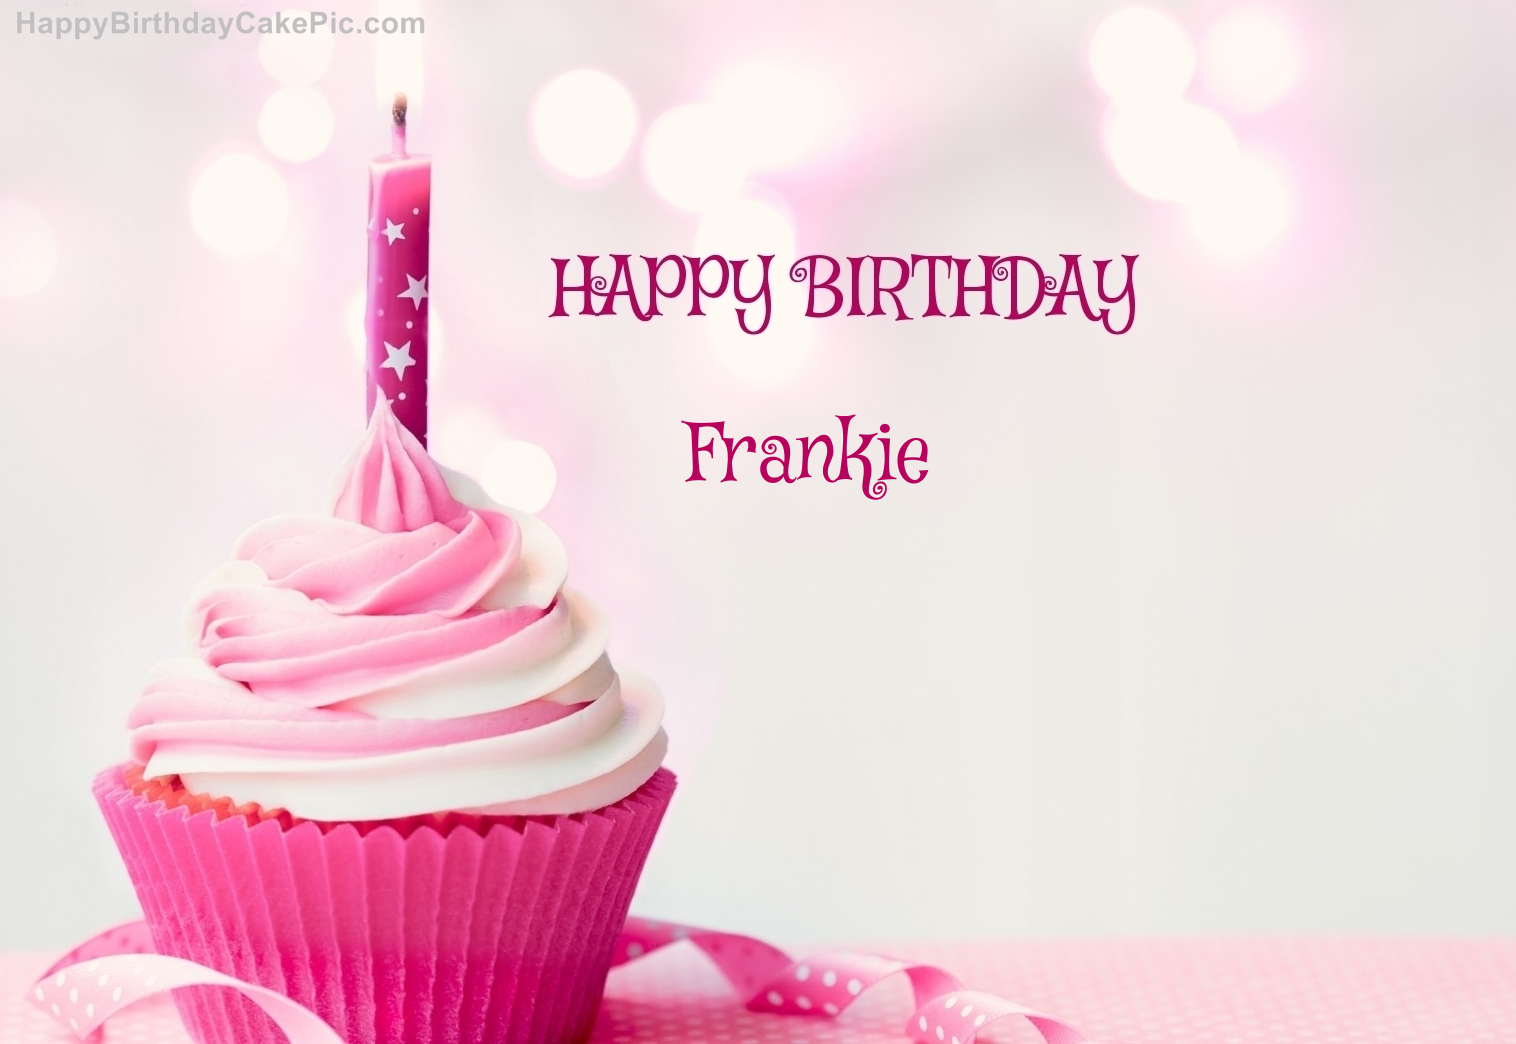 Happy Birthday Cupcake Candle Pink Cake For Frankie